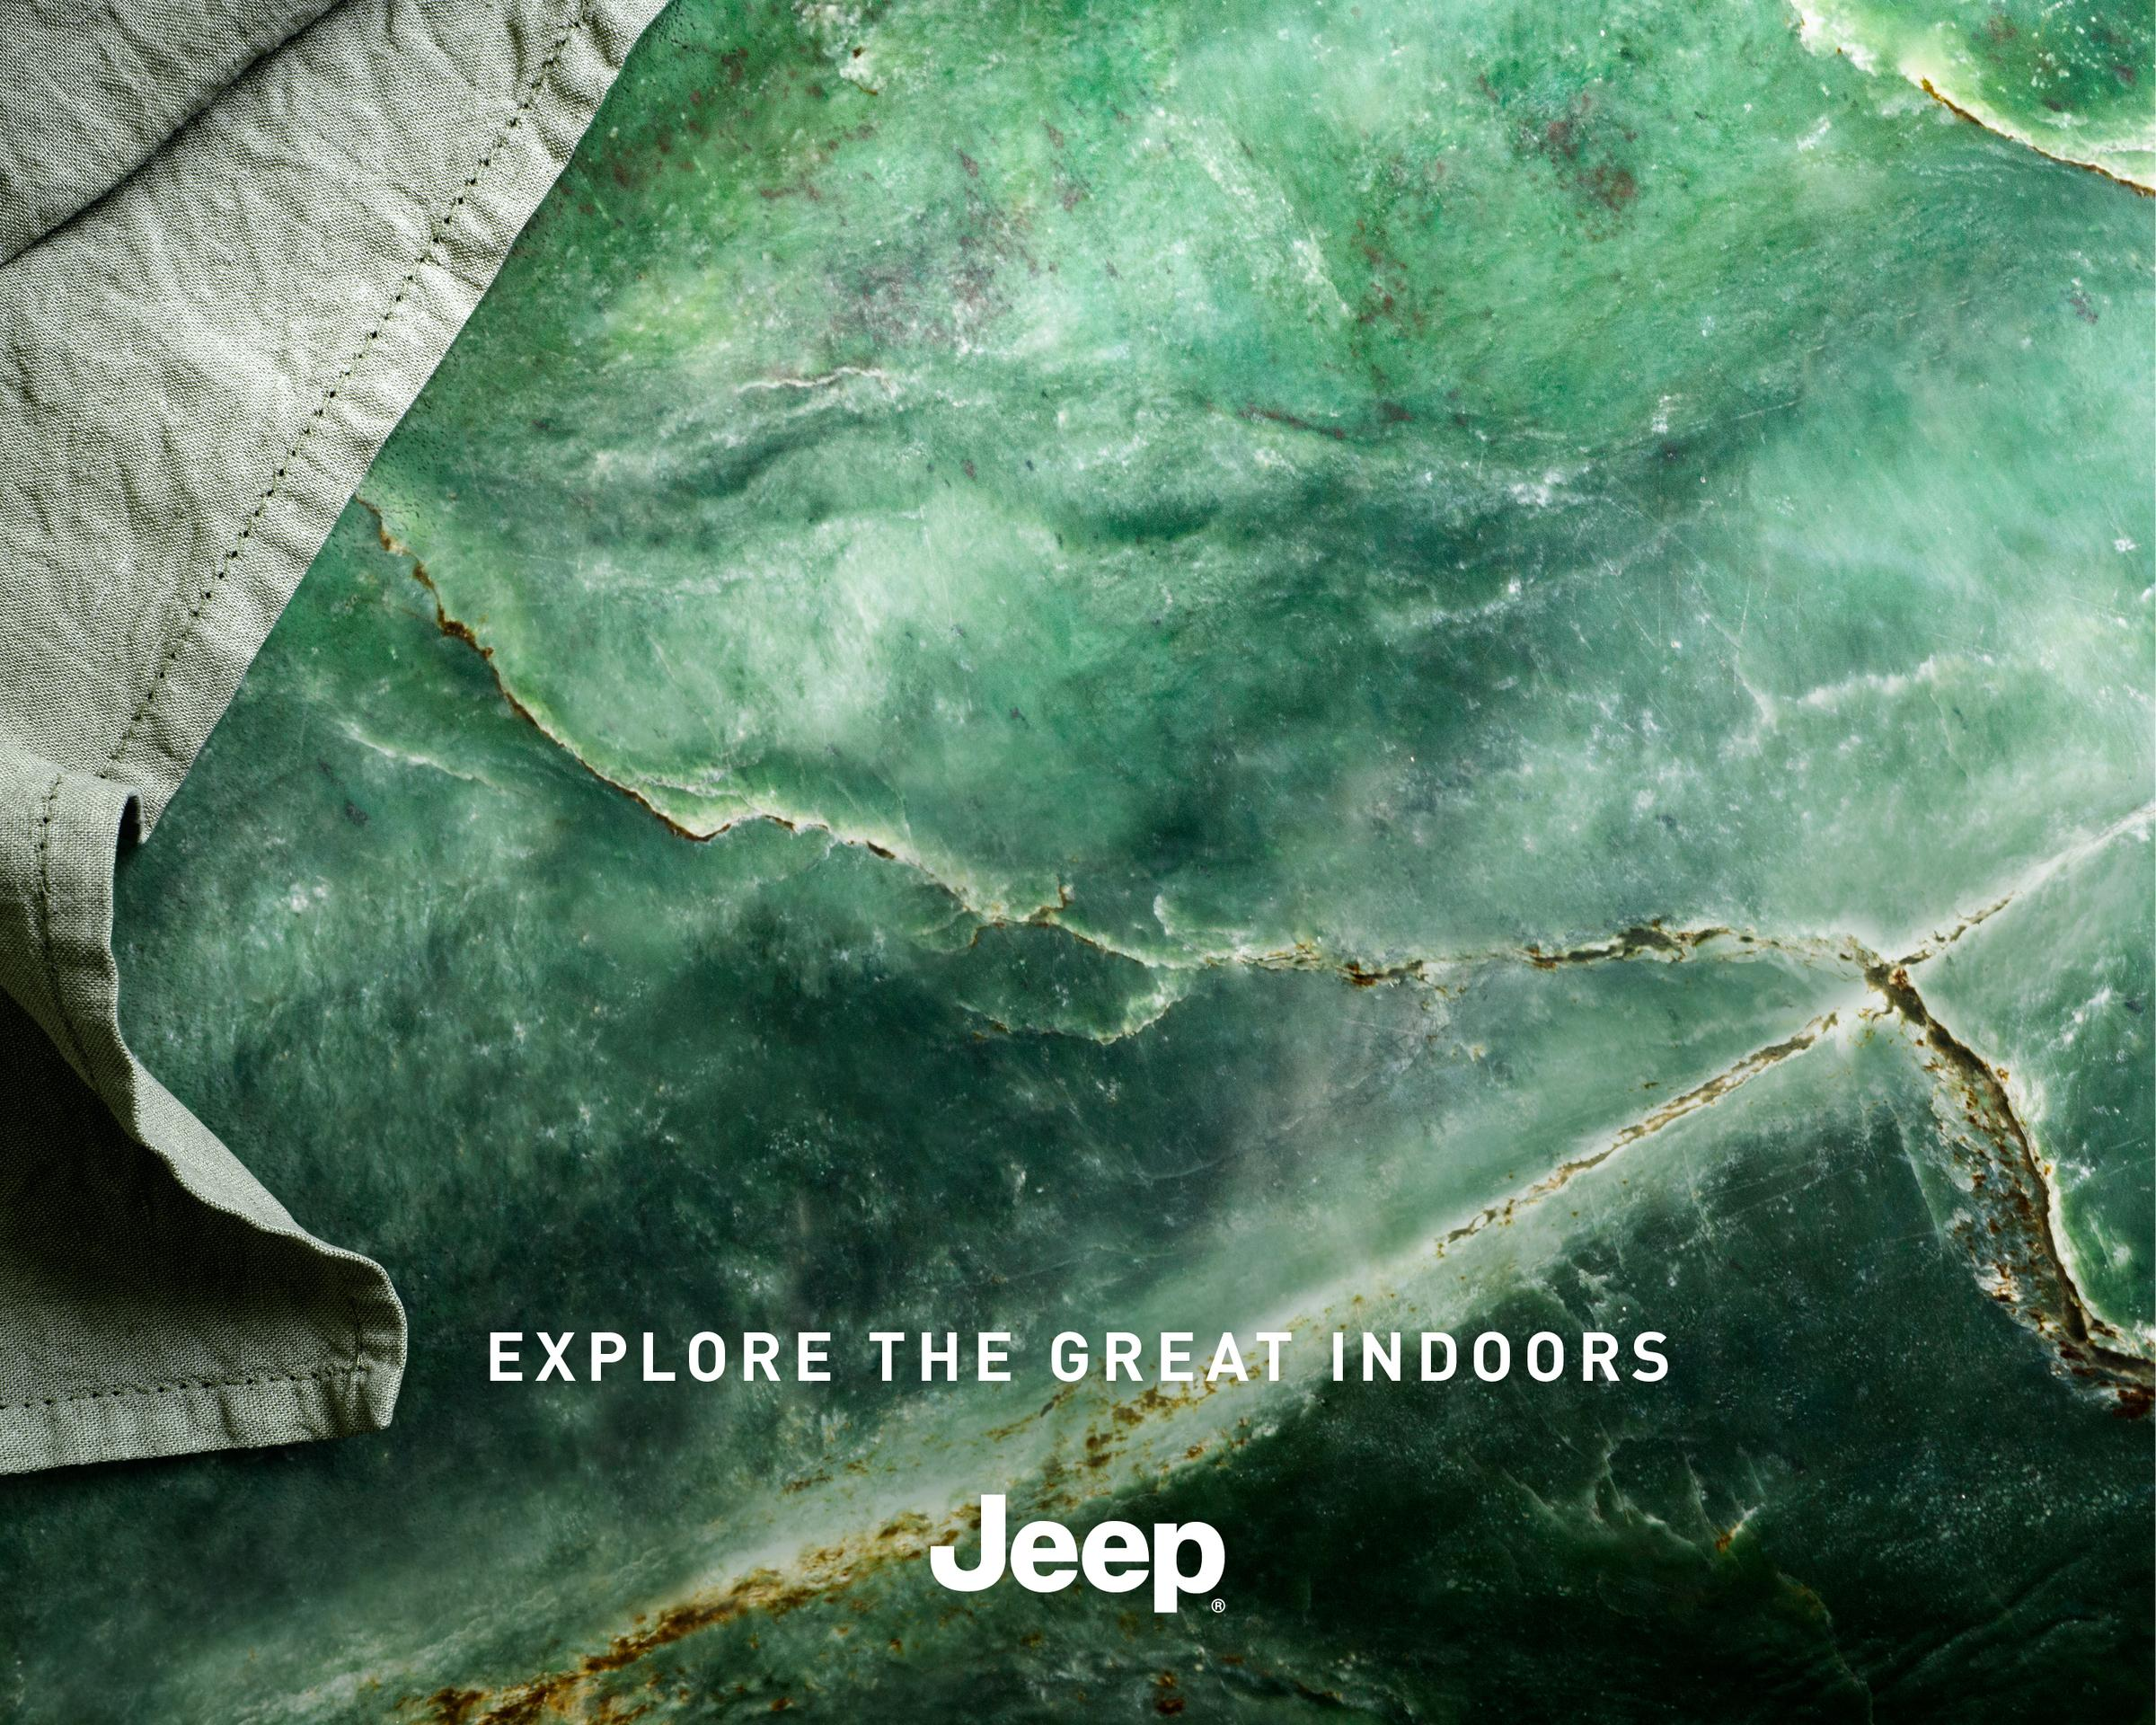 Jeep: Explore The Great Indoors